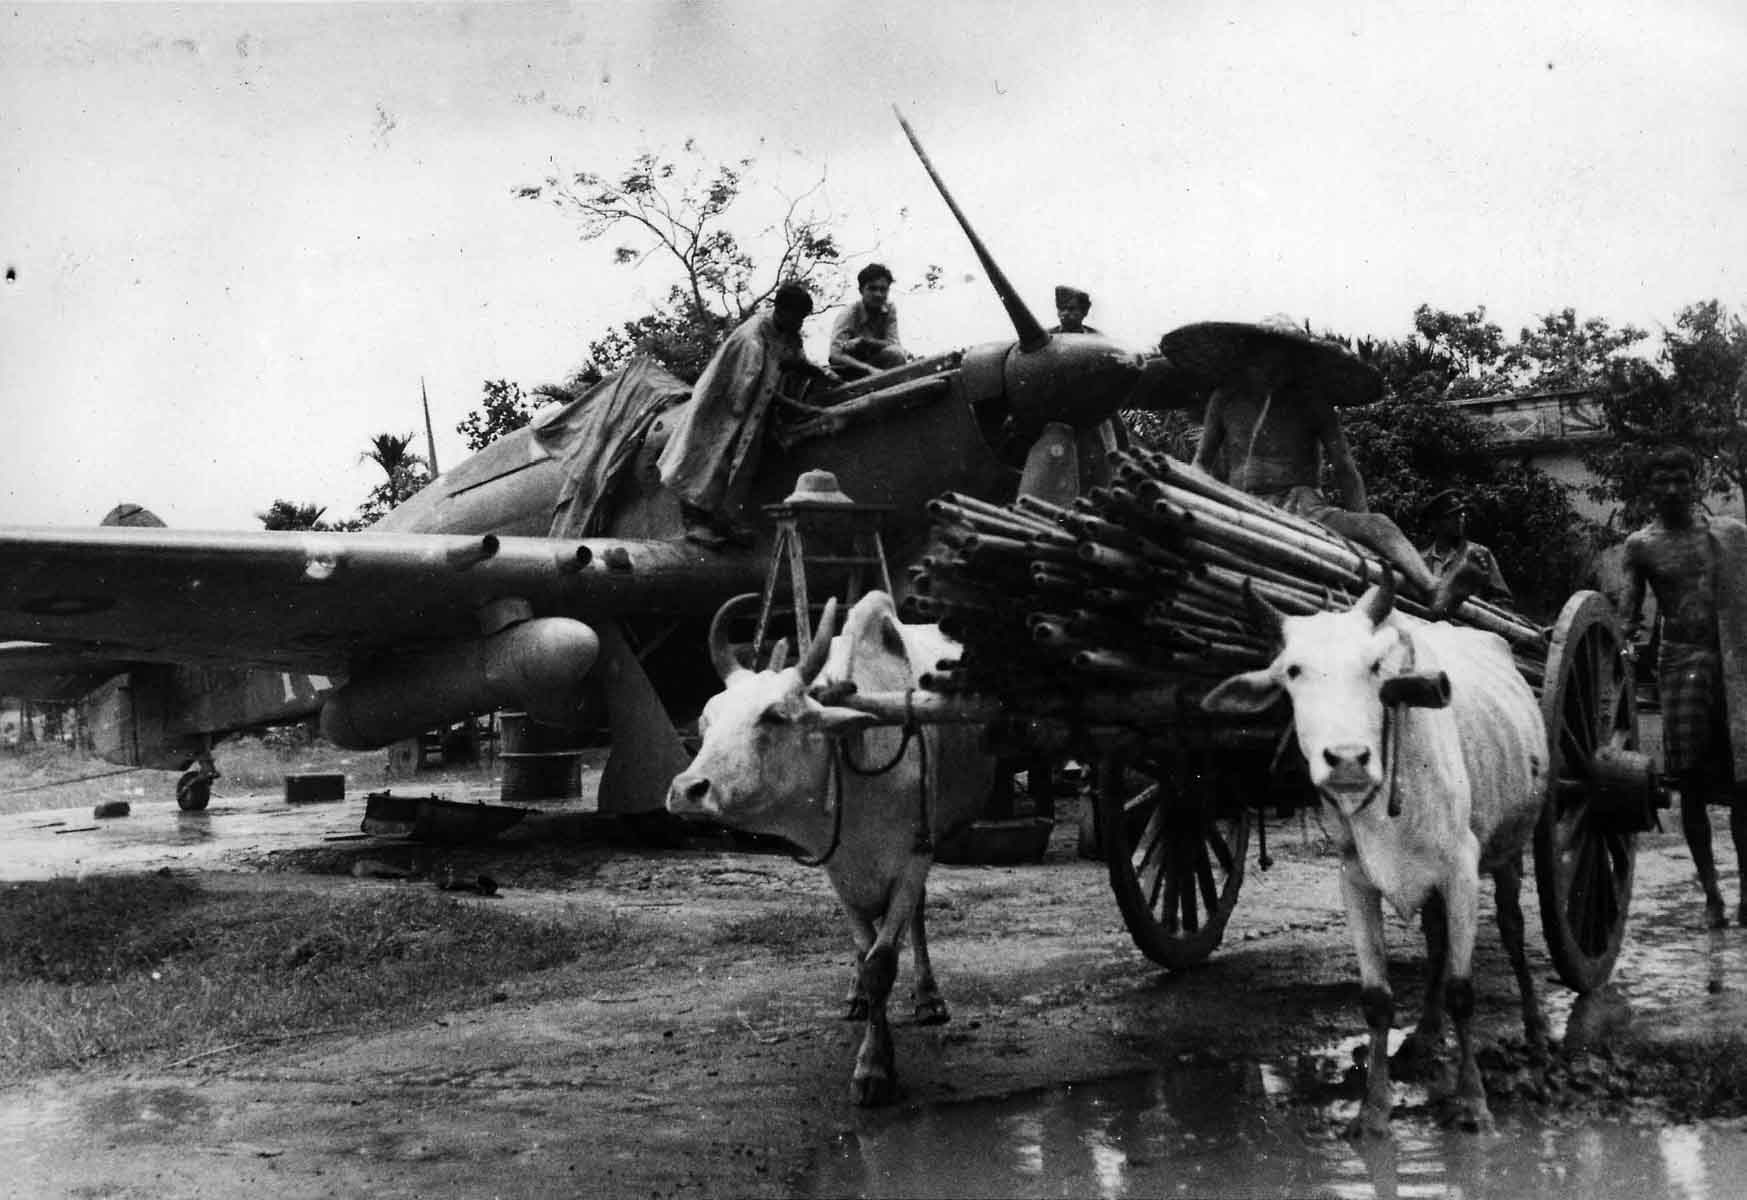 An ox-cart passing in front of a Hawker Hurricane being serviced by an Indian ground crew, Burma, 1944 (RAFM PC71/19/1755)